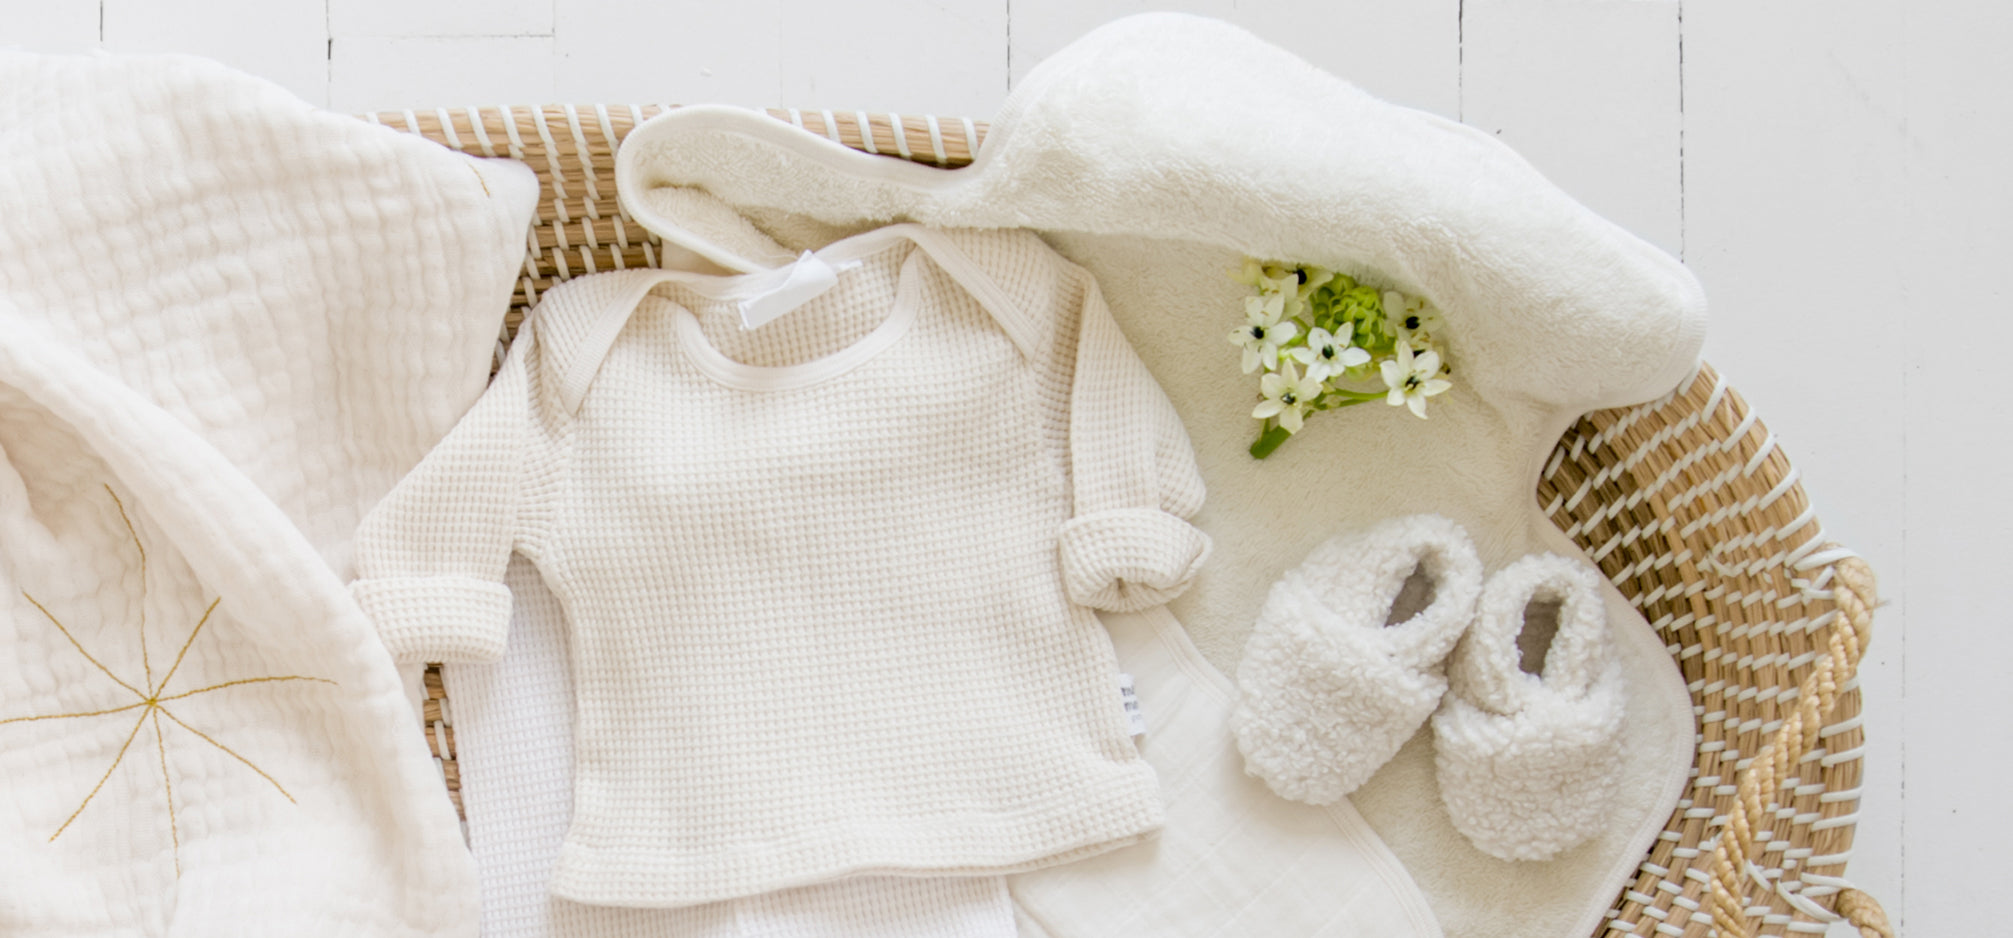 A cream baby outfit and blanket in a seagrass basket.